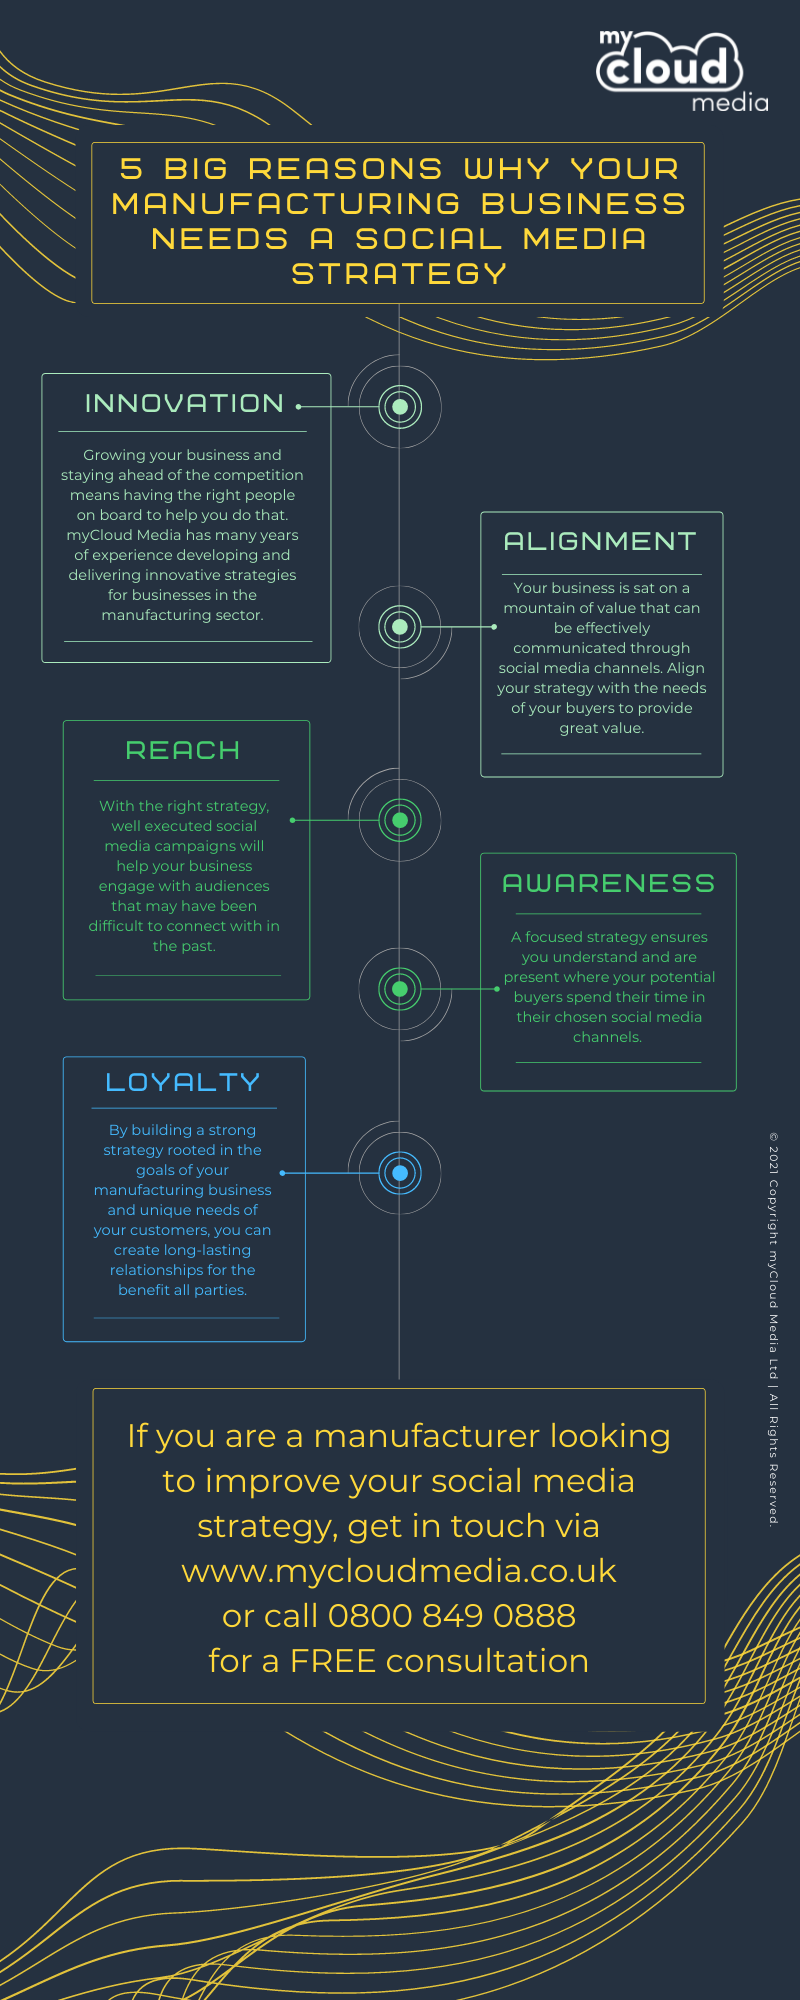 Infographic - 5 Big Reasons Why Your Manufacturing Business Needs a Social Media Strategy